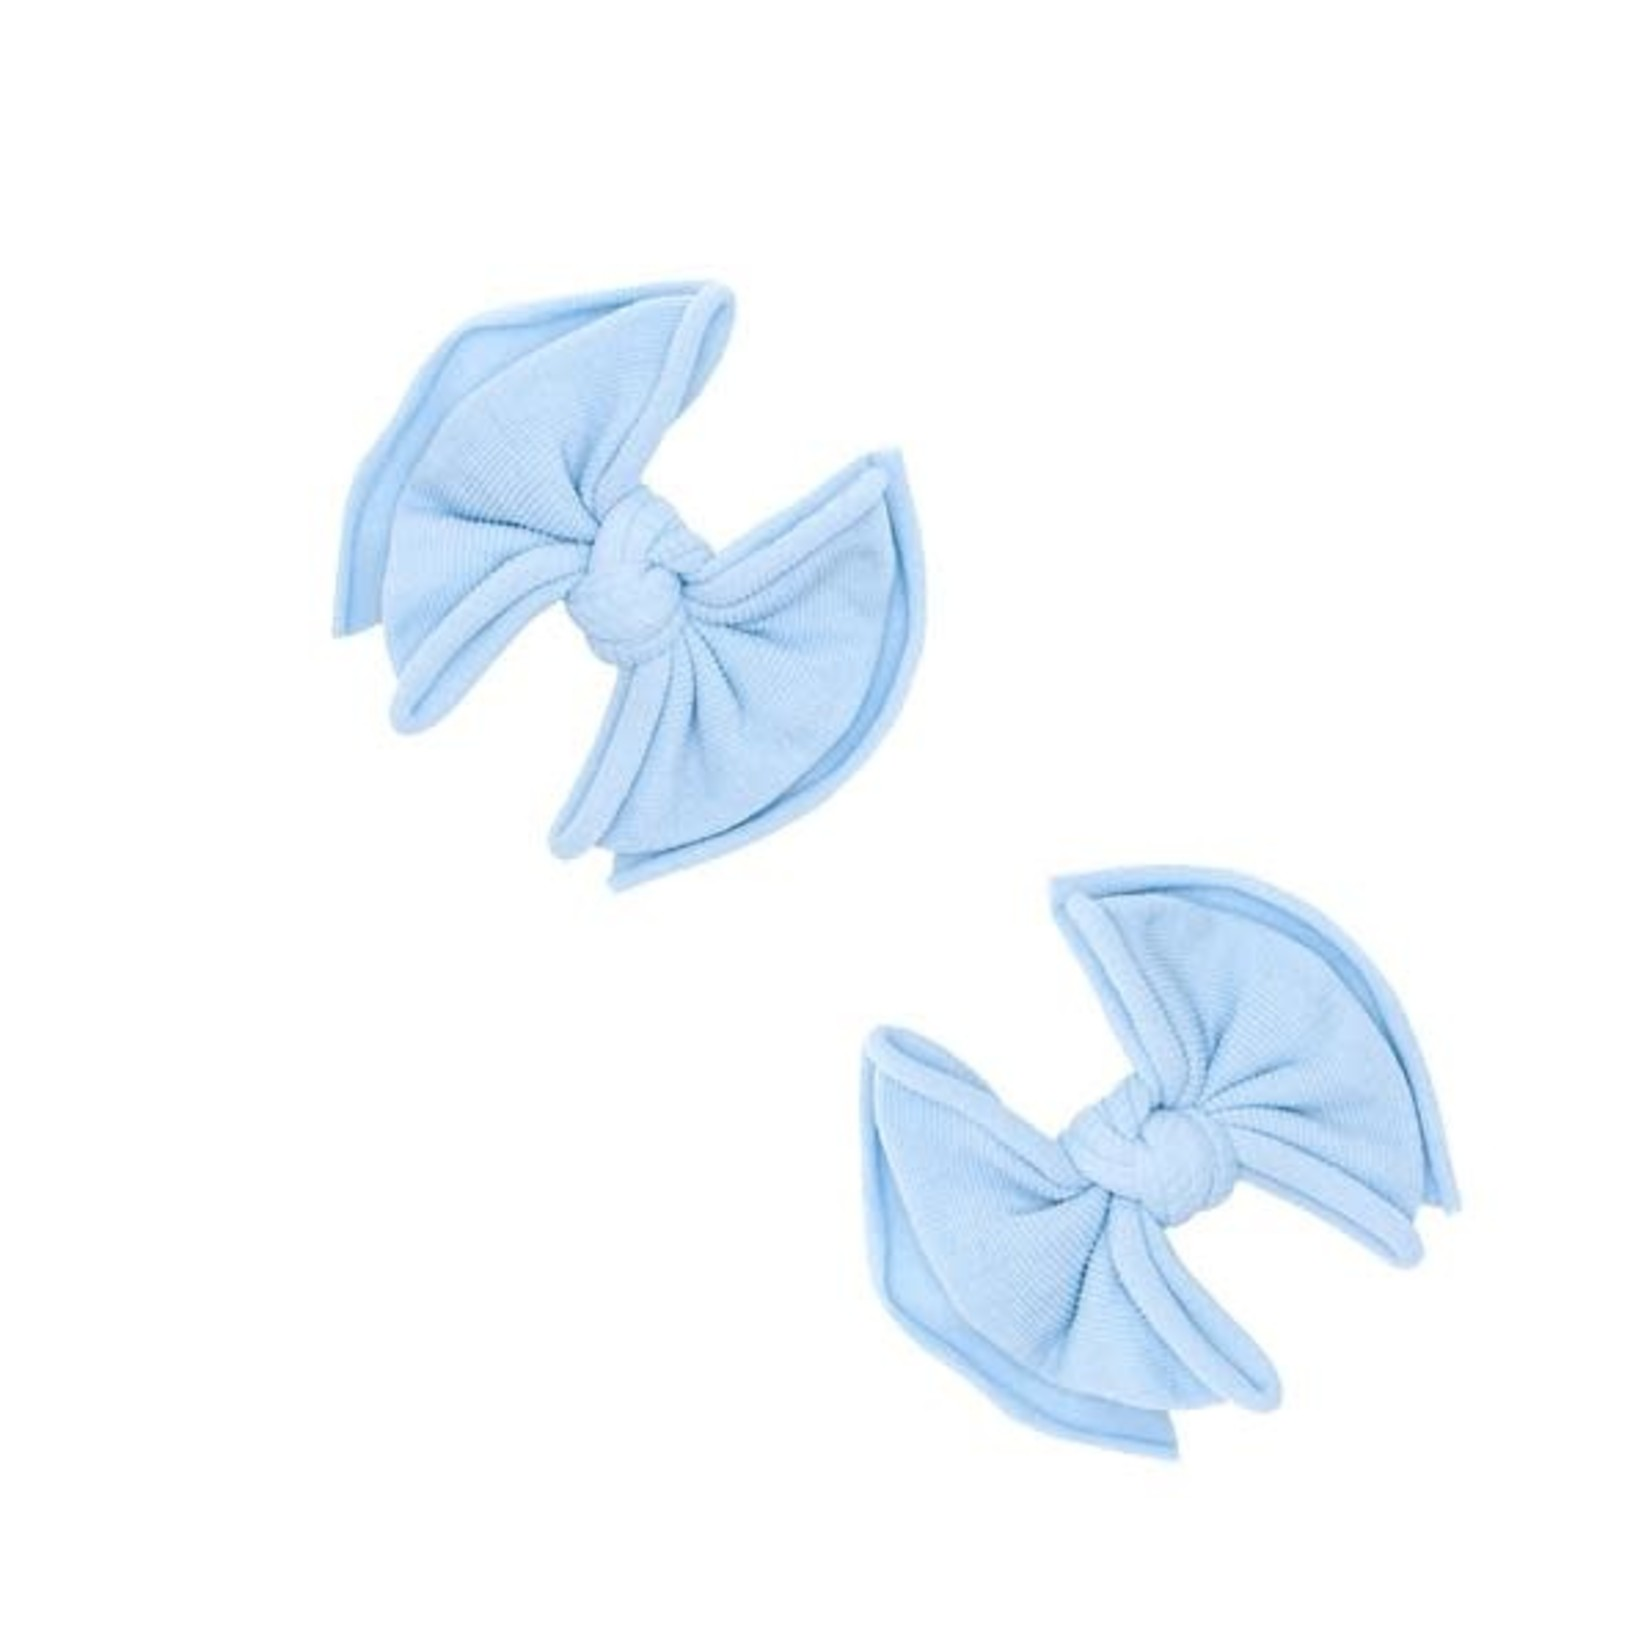 Baby Bling Bows 2PK BABY FAB CLIPS: dusty blue